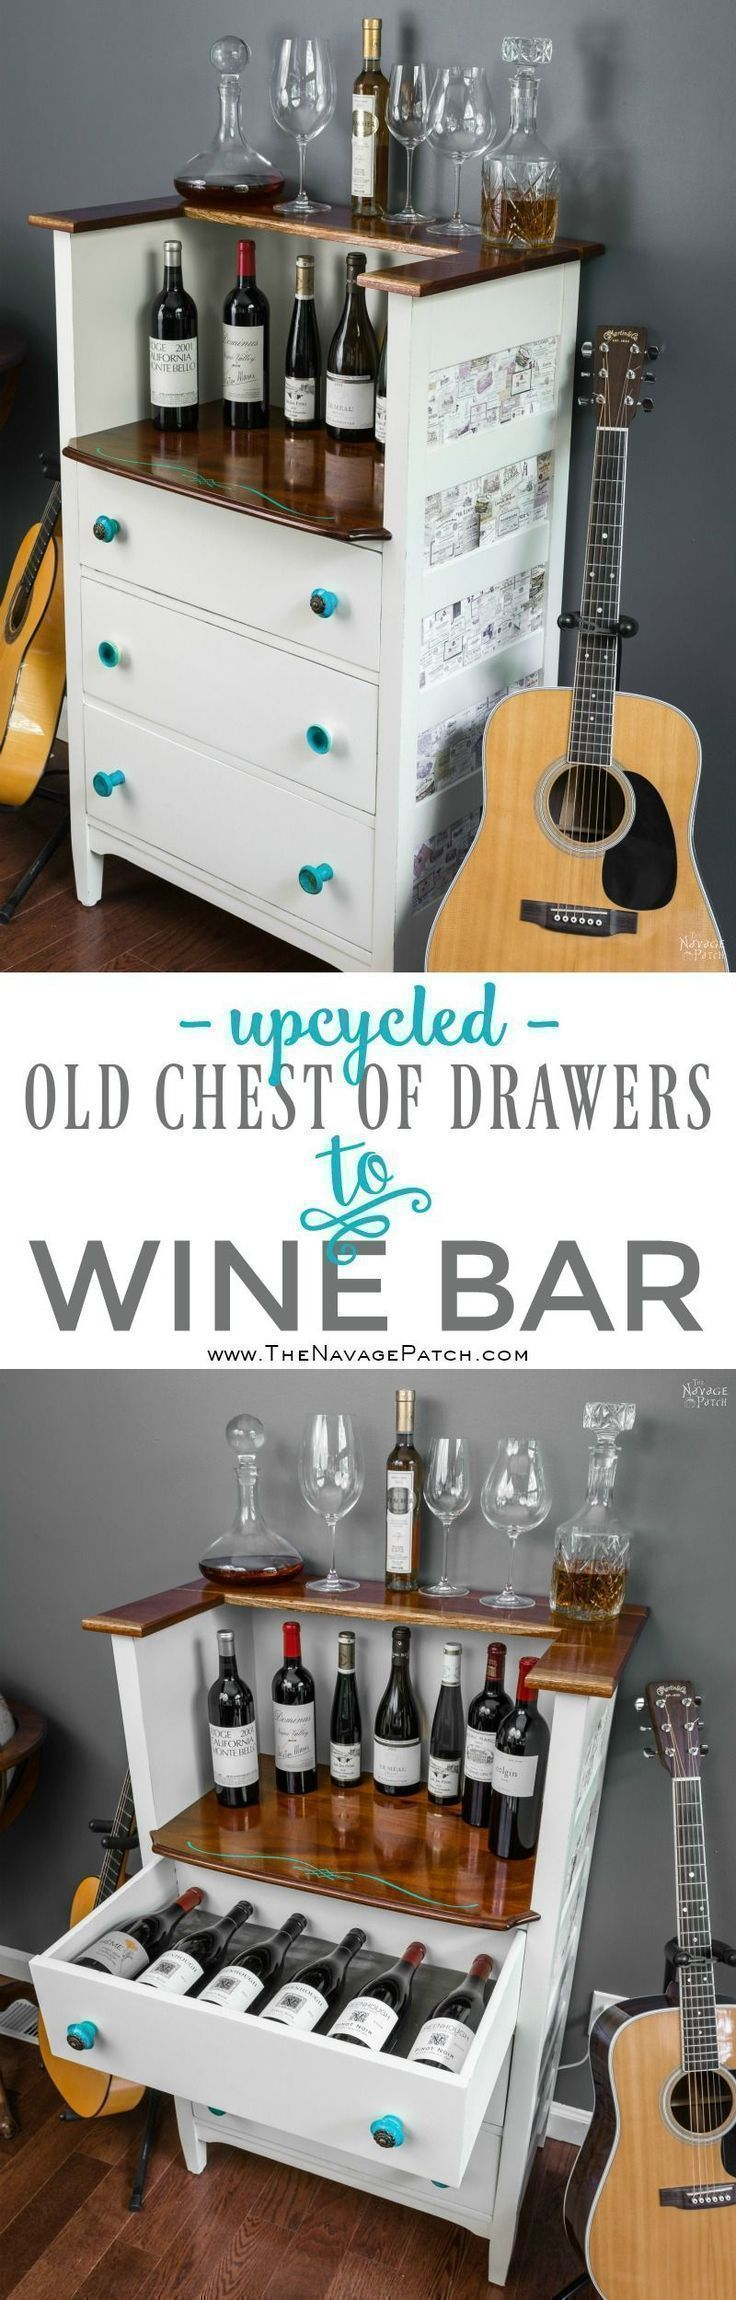 Upcycled: Old Chest of Drawers to Wine Bar | DIY furniture makeover| Upcycled furniture | DIY Wine Bar | From dresser to wine bar | Homemade chalk paint | Painted and upholstered furniture | Upholstery | Farmhouse style furniture | Annie Sloan Old White color | Fabric onlay | Painted wood furniture |Transformed furniture | Before & After | TheNavagePatch.com #chalkpaintedfurniture #oldfarmhouse #furniturecolors #diyfurniture #anniesloanpaintedfurniture